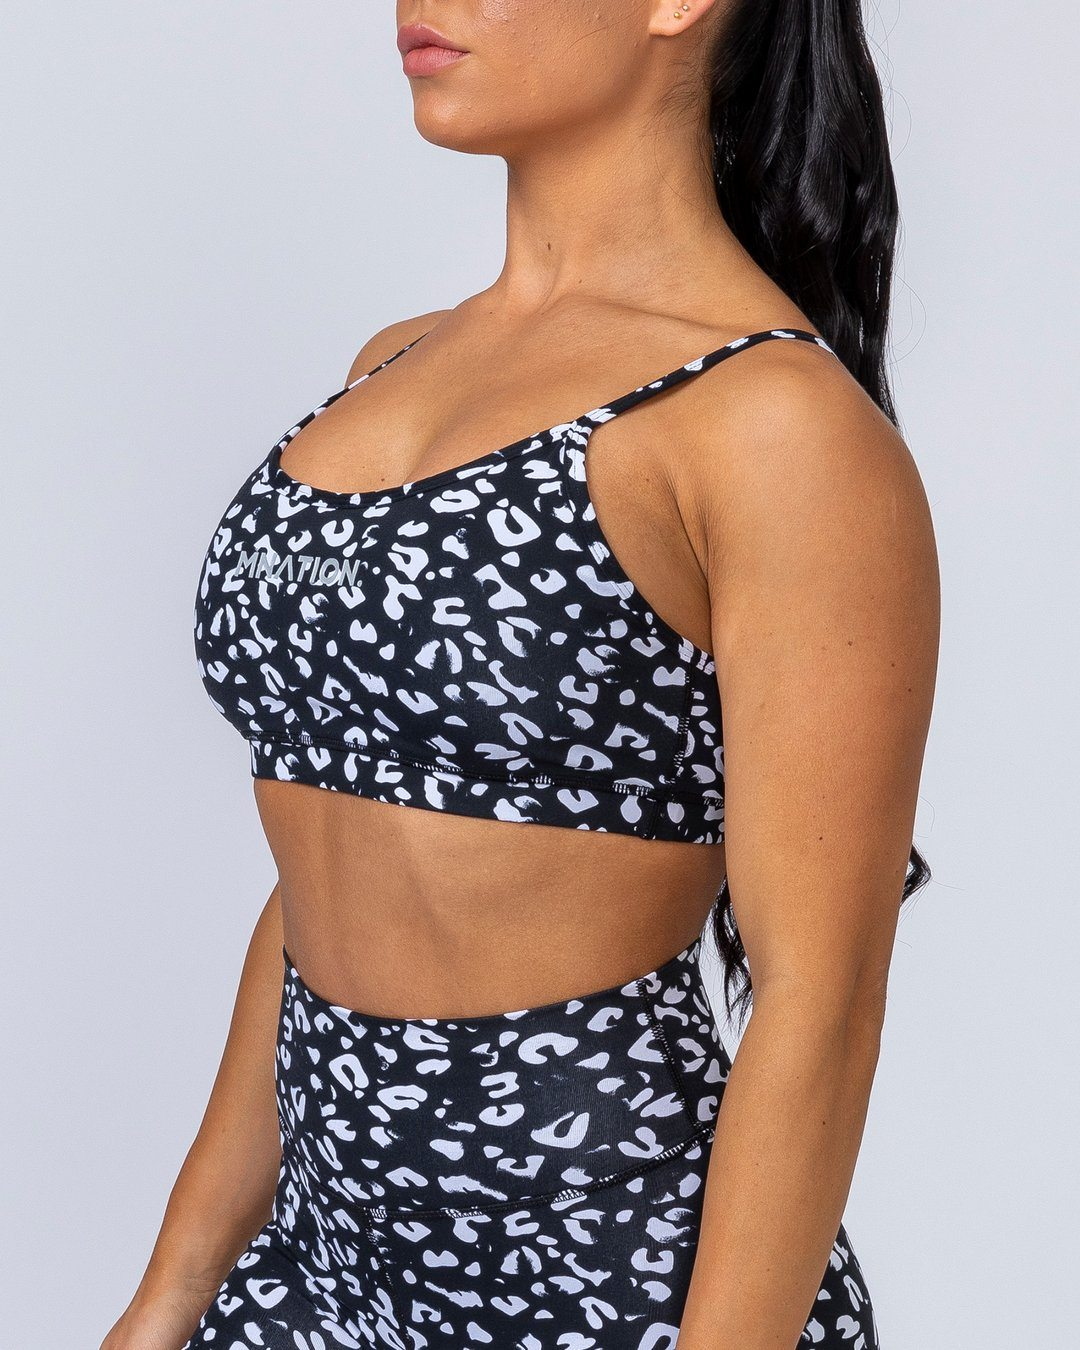 Muscle Nation Scoop Bra - Black Leopard